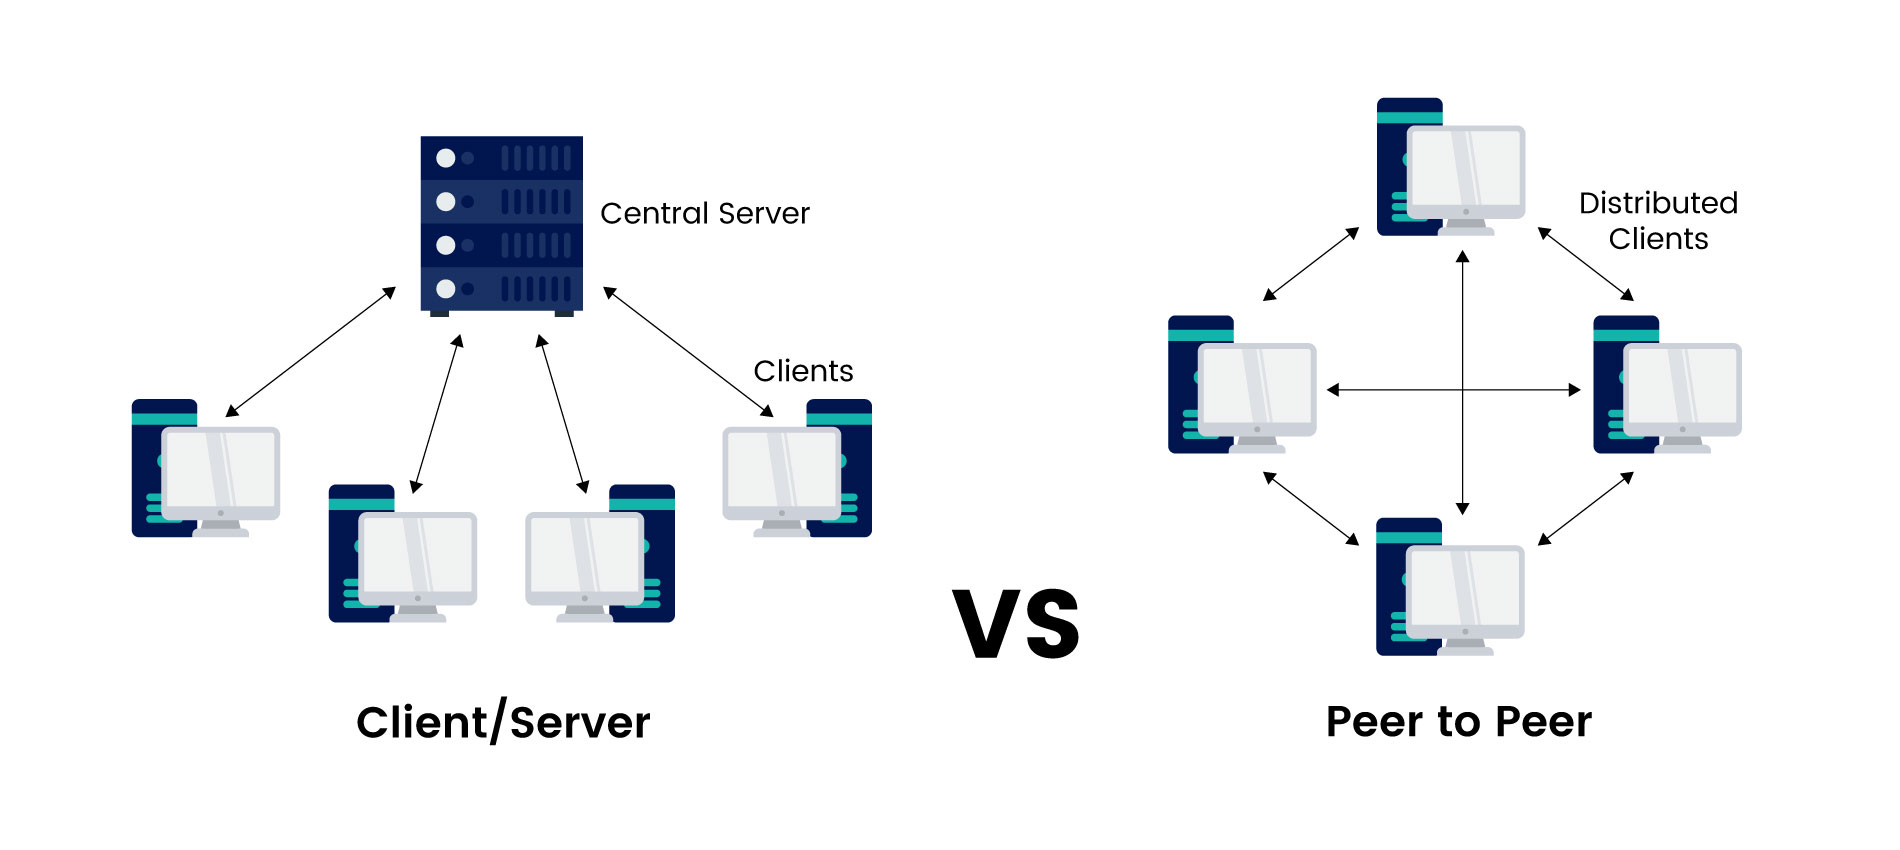 client server and p2p comparison in ProximaX platform